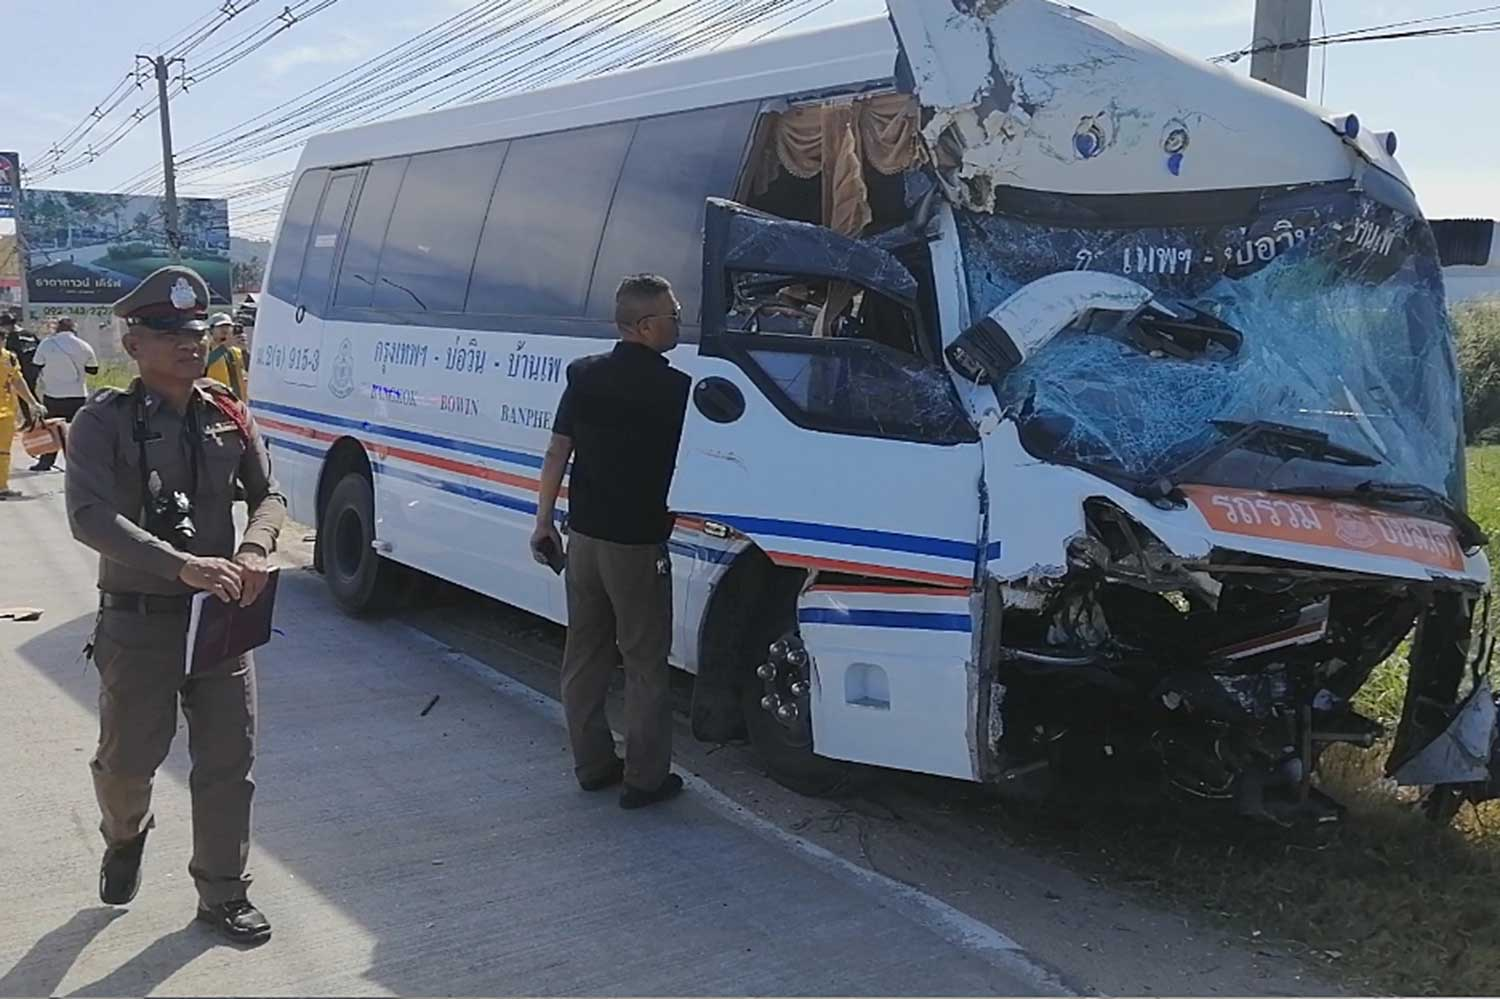 An investigator inspects the damage to a Bangkok-bound minibus after it struck an oil tanker in Sri Racha on Saturday morning, injuring 18 passengers and the driver. (Photo by Jersak Saengthongcharoen)